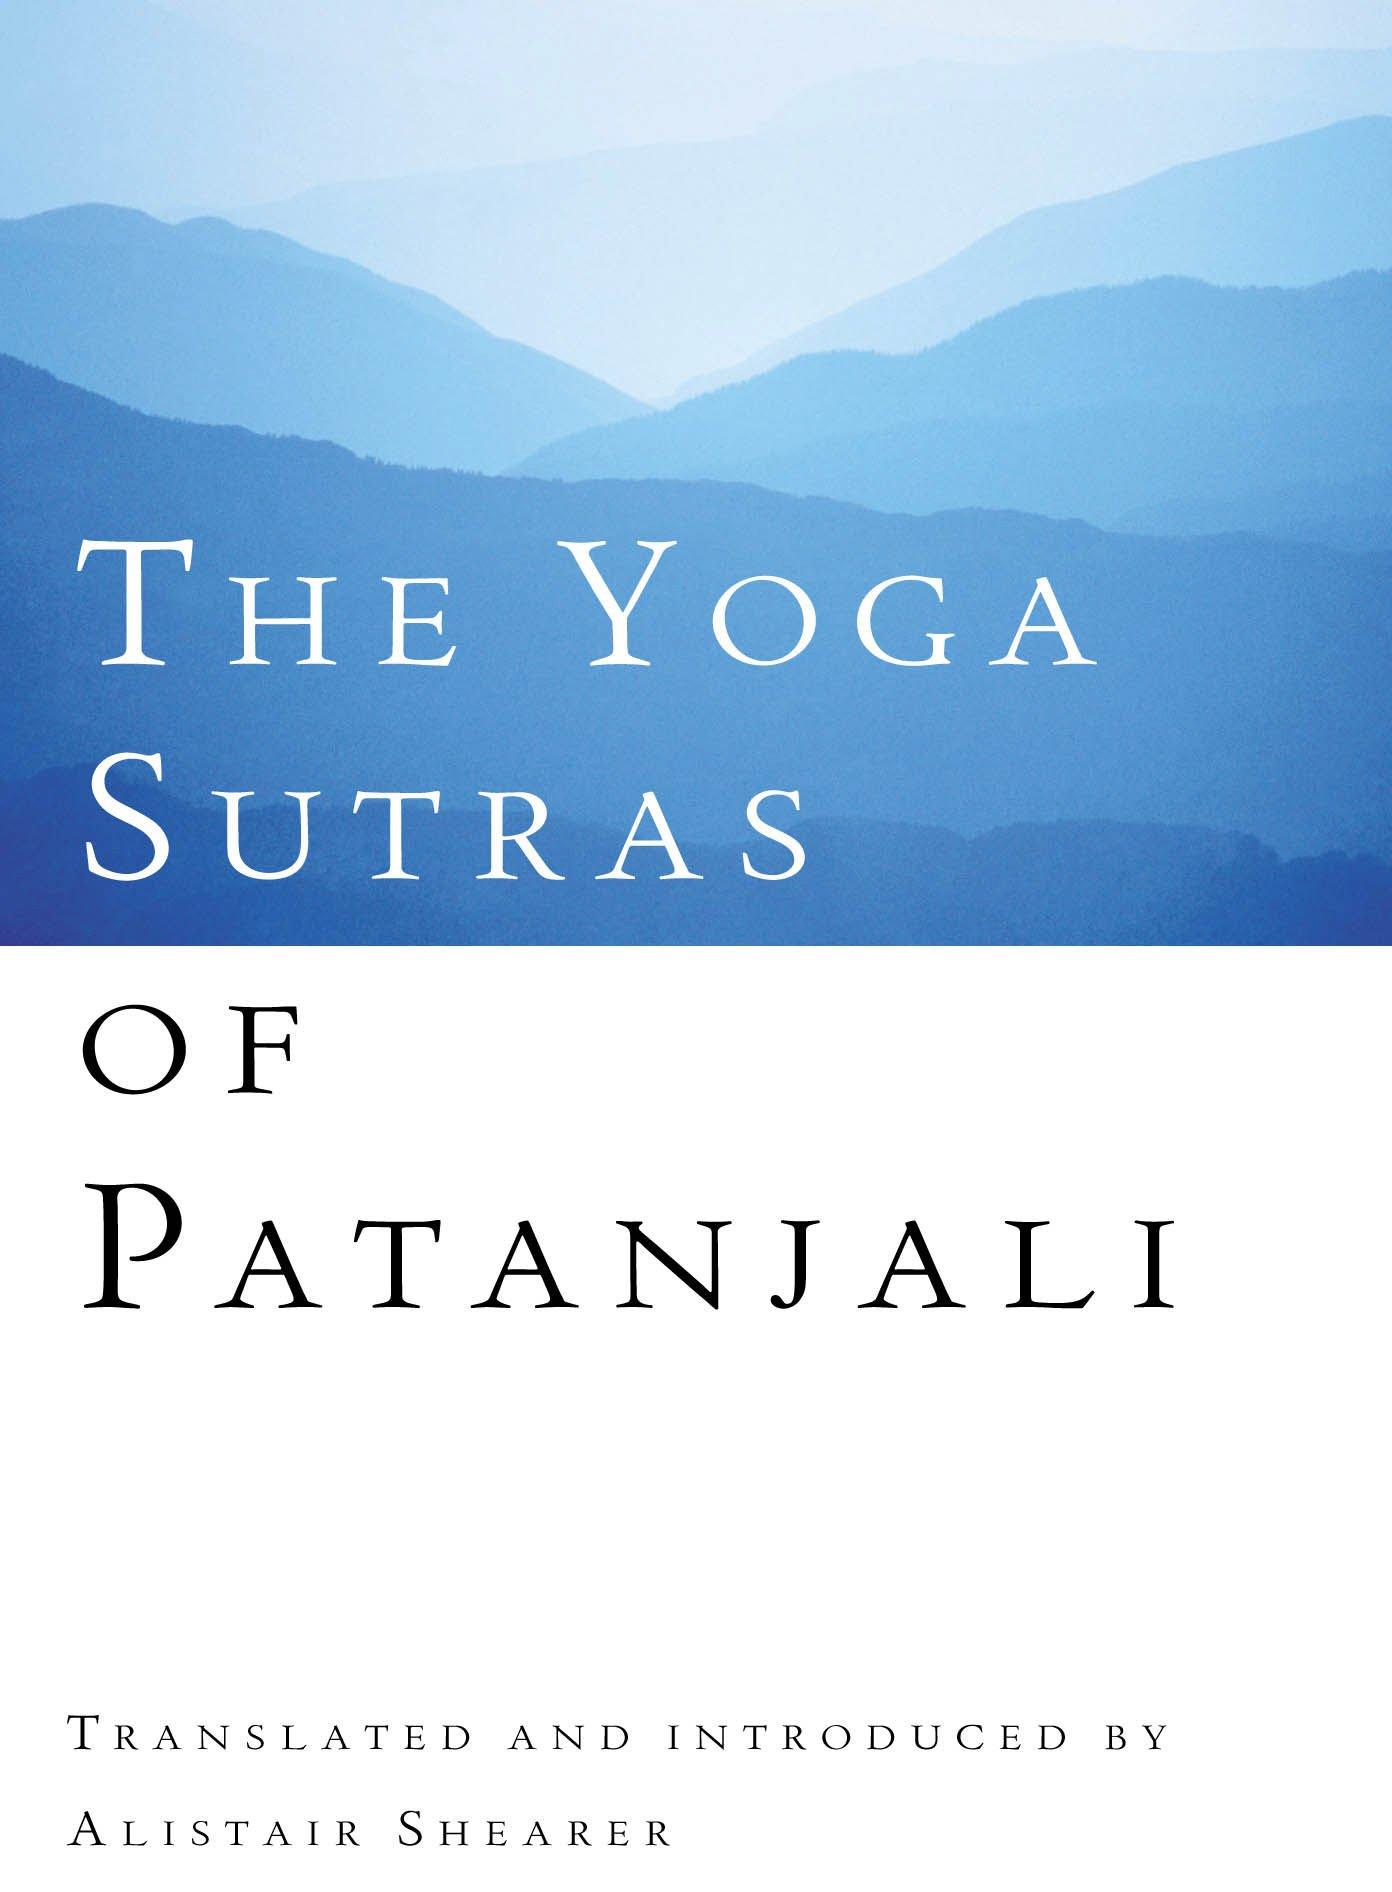 The Yoga Sutras Of Patanjali: Amazon.es: Alistair Shearer ...